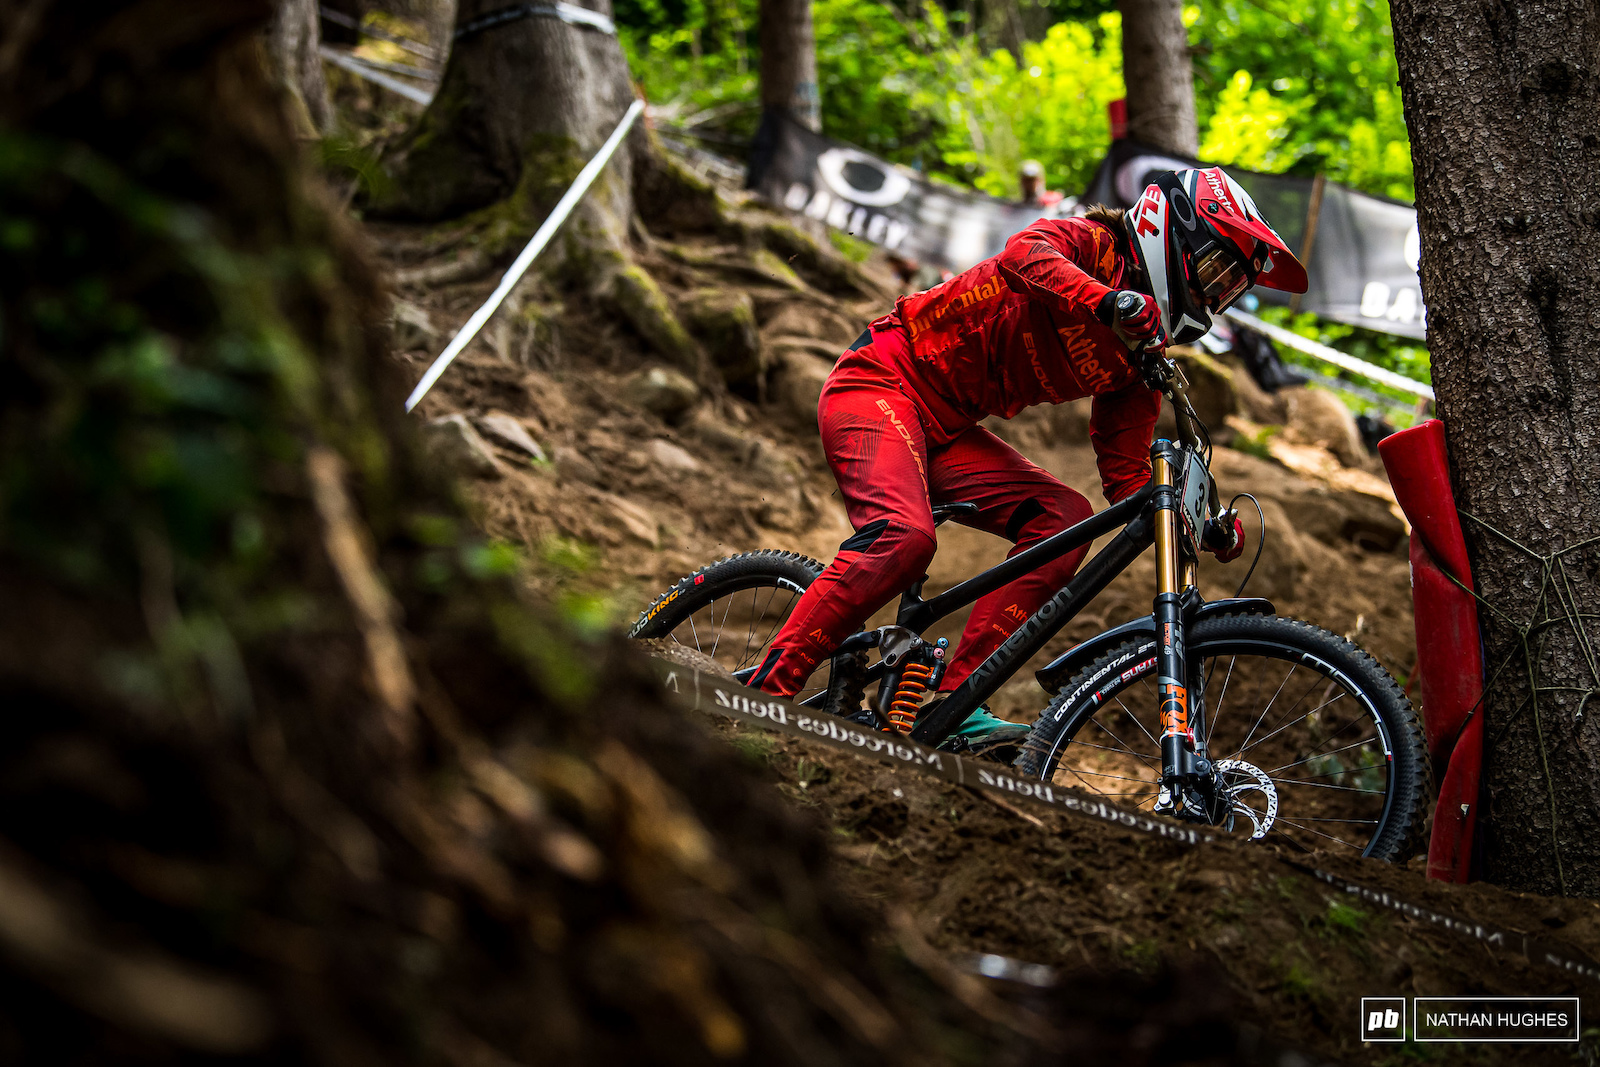 Mille Johnset kept it rubber side down on the gnarly course for 2nd place in junior women.